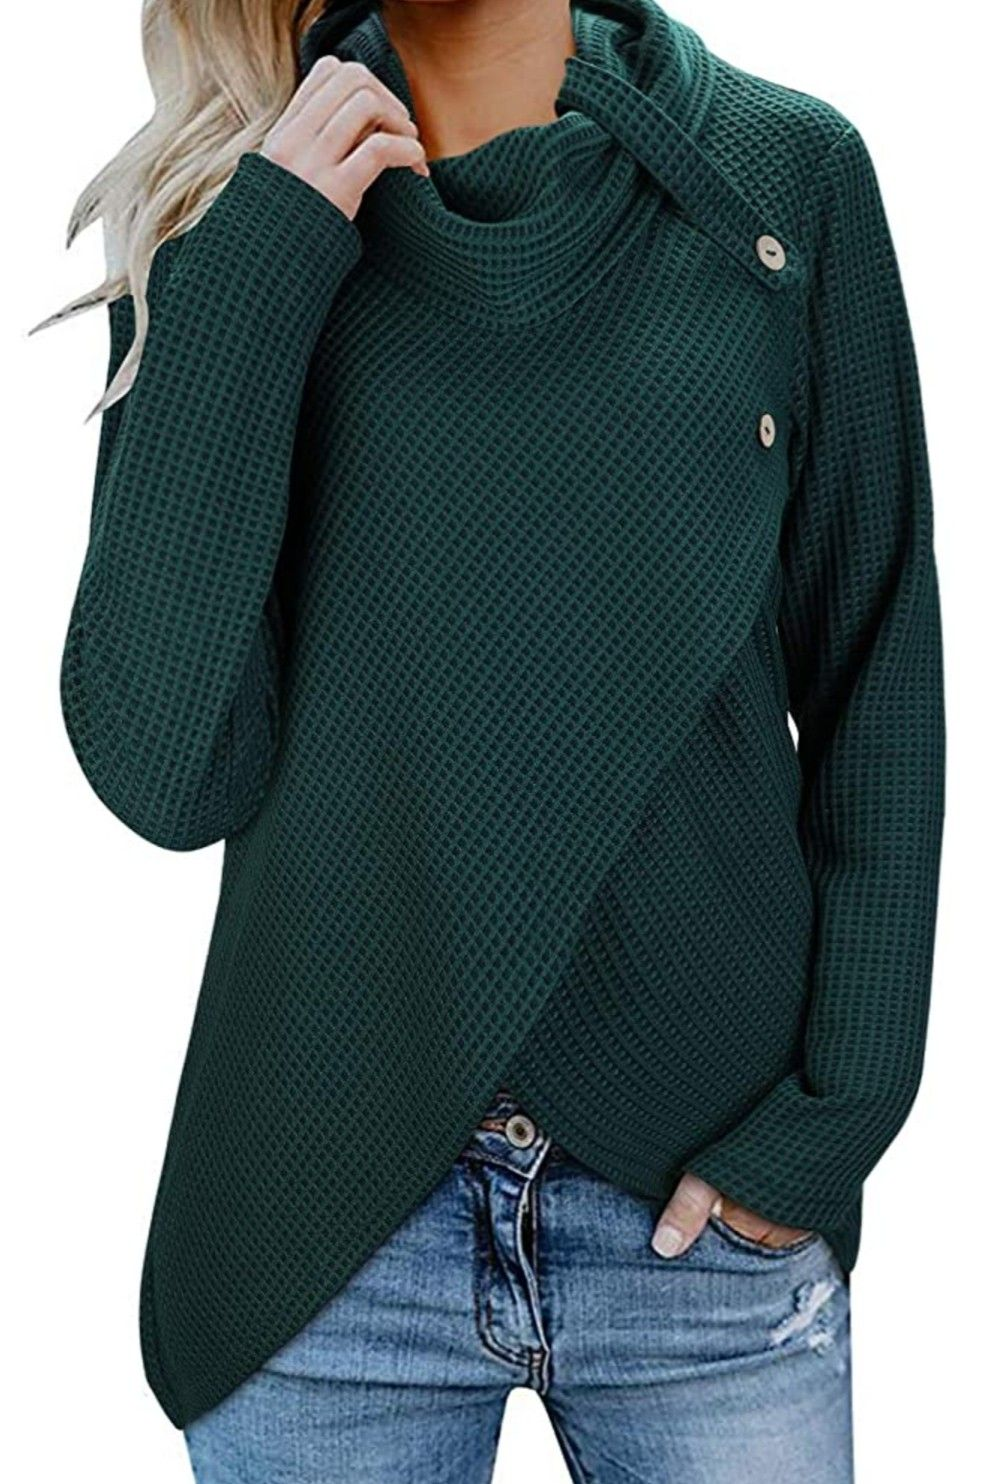 AMCLOS Womens Cowl Neck Button Tops Long Sleeve Tunic Casual Plaid Sweatshirts Pullover